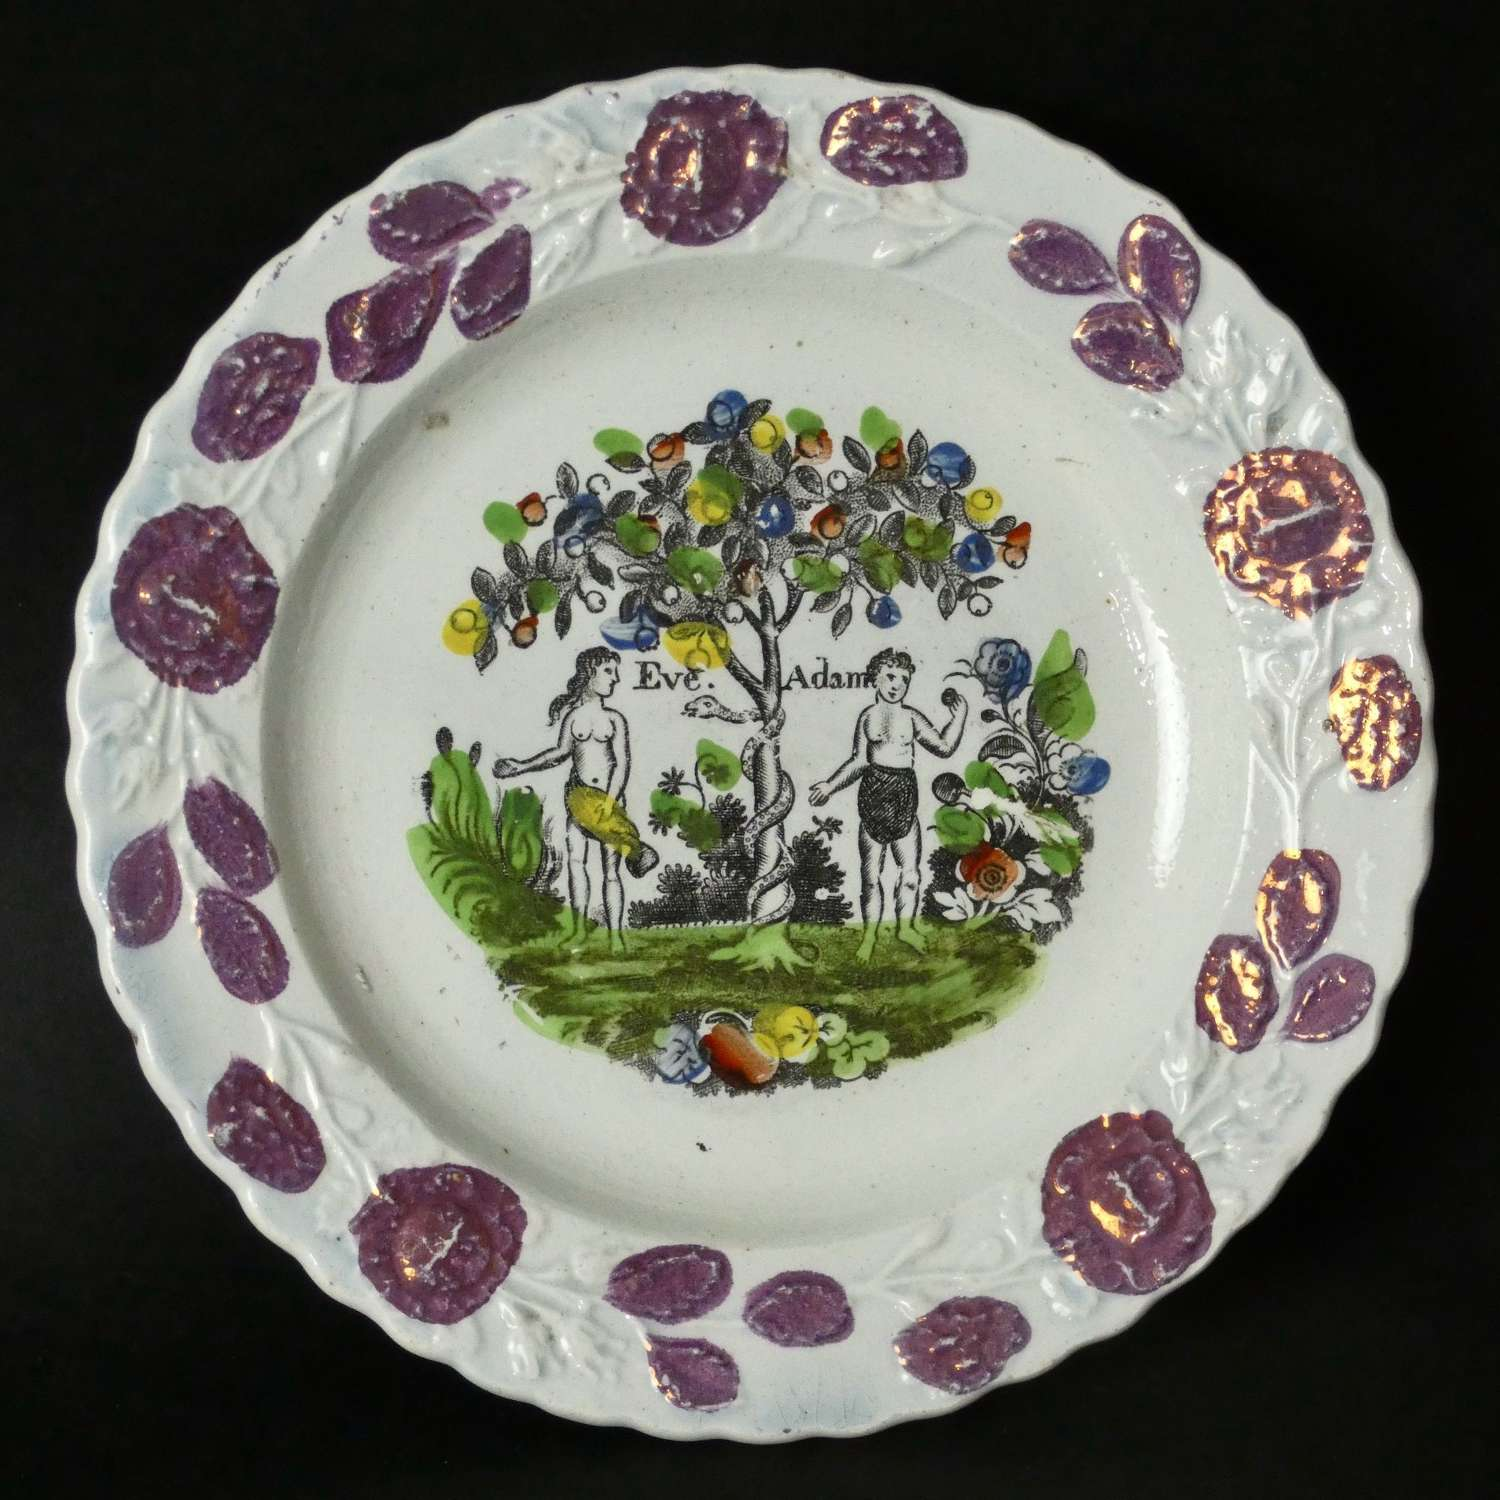 Eve & Adam child's plate with lustre border